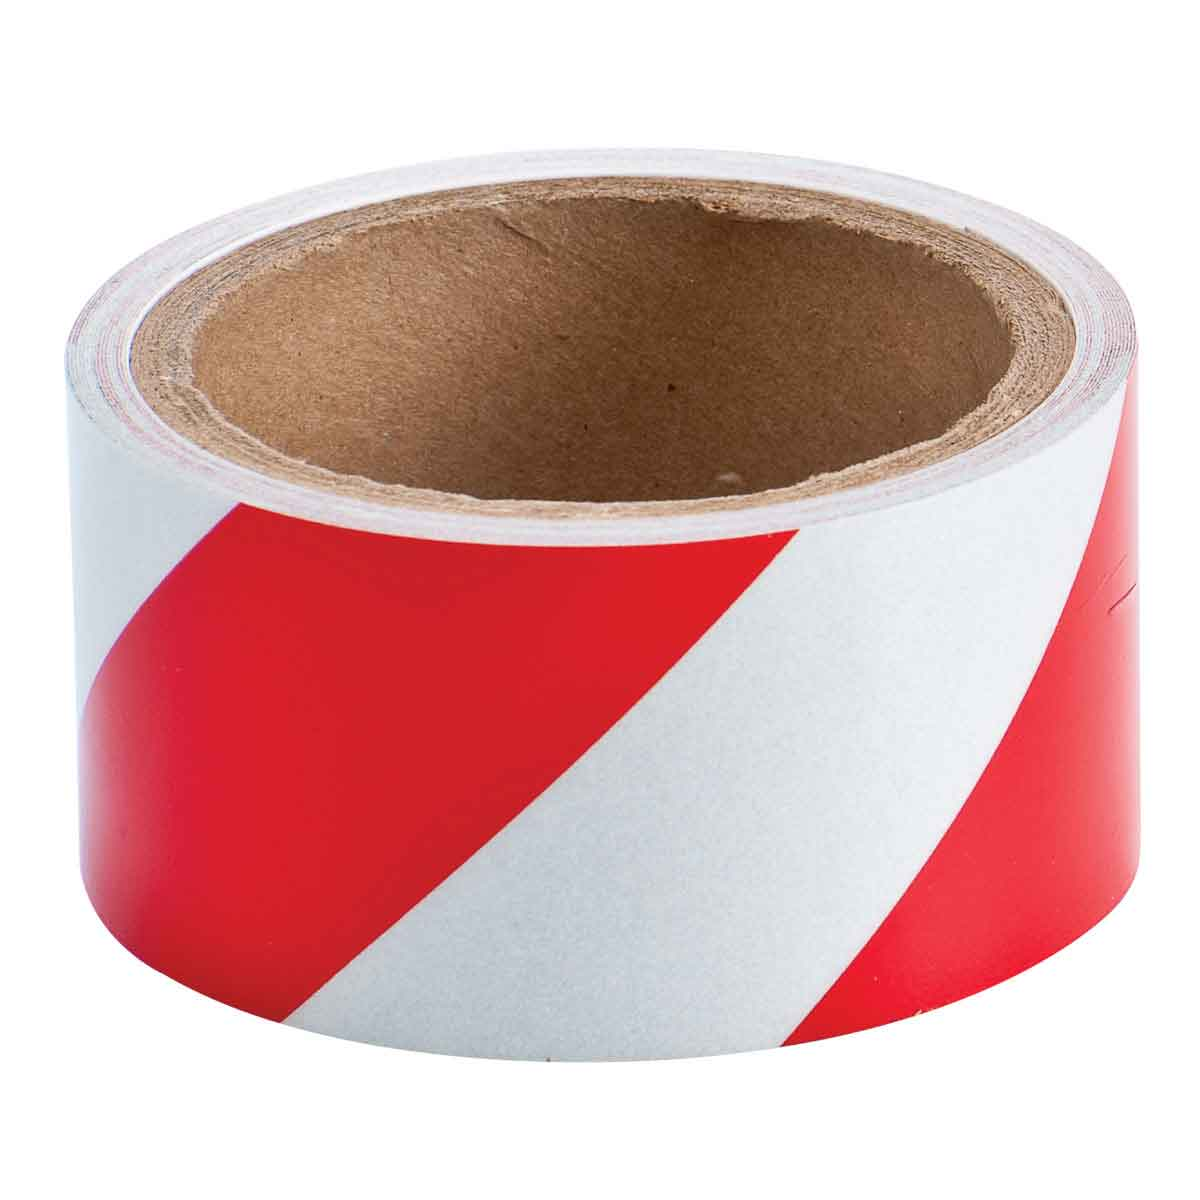 BRADY 76309 REFLECTIVE STRIPED TAPE